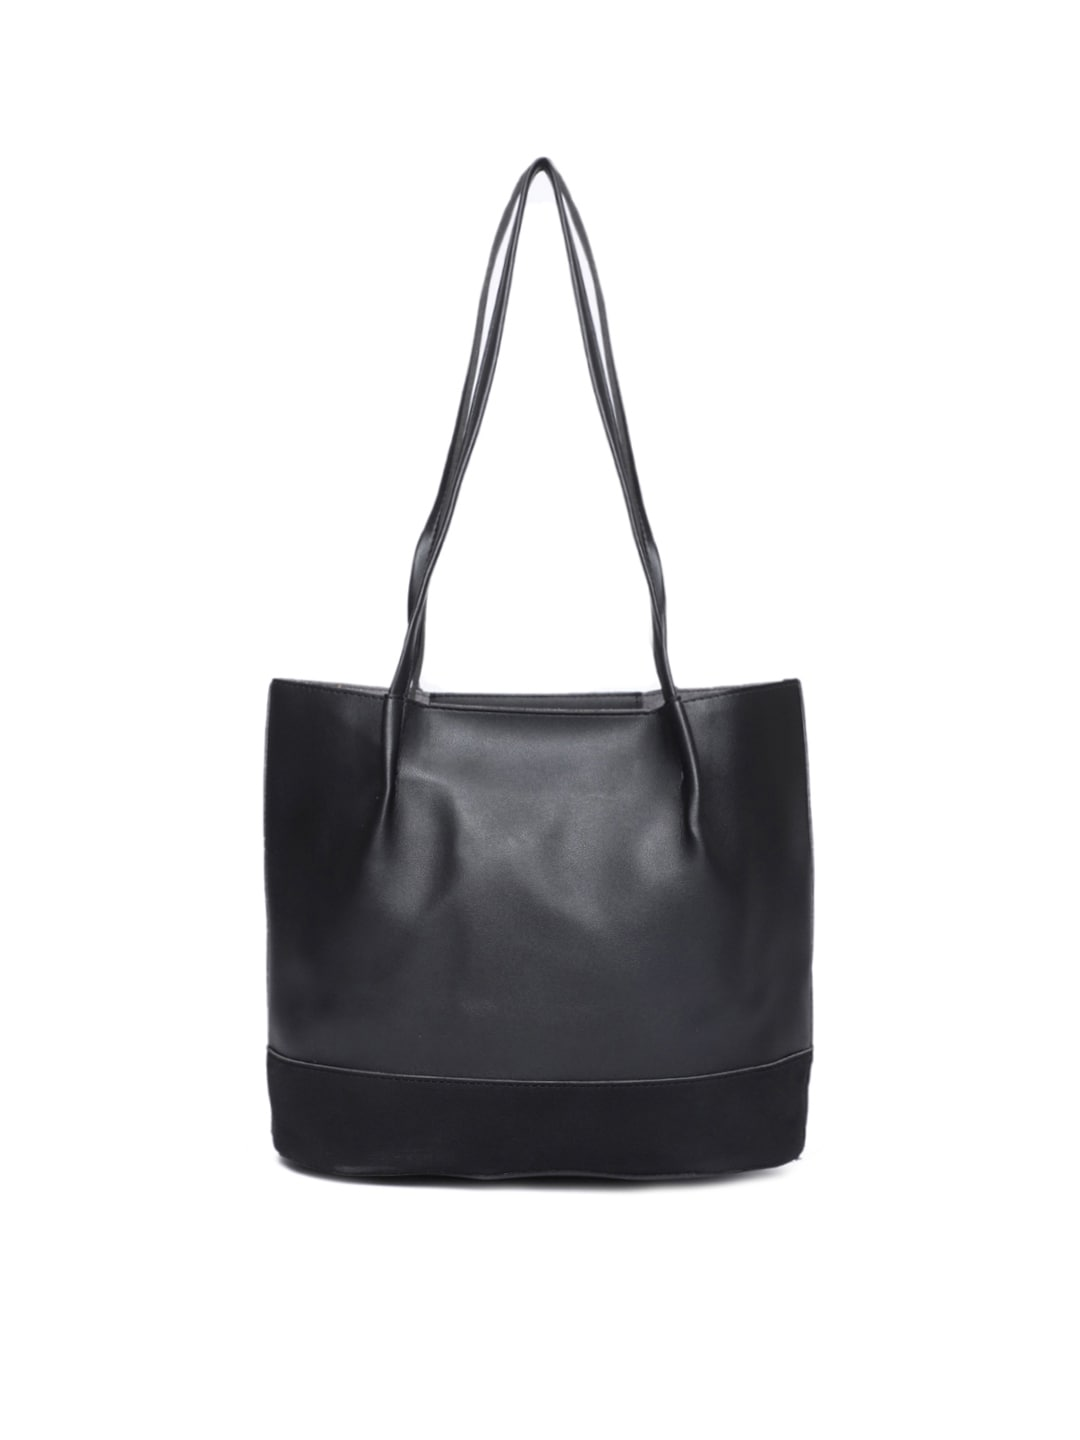 d0bd097abcf6 Handbags Tracksuits - Buy Handbags Tracksuits online in India